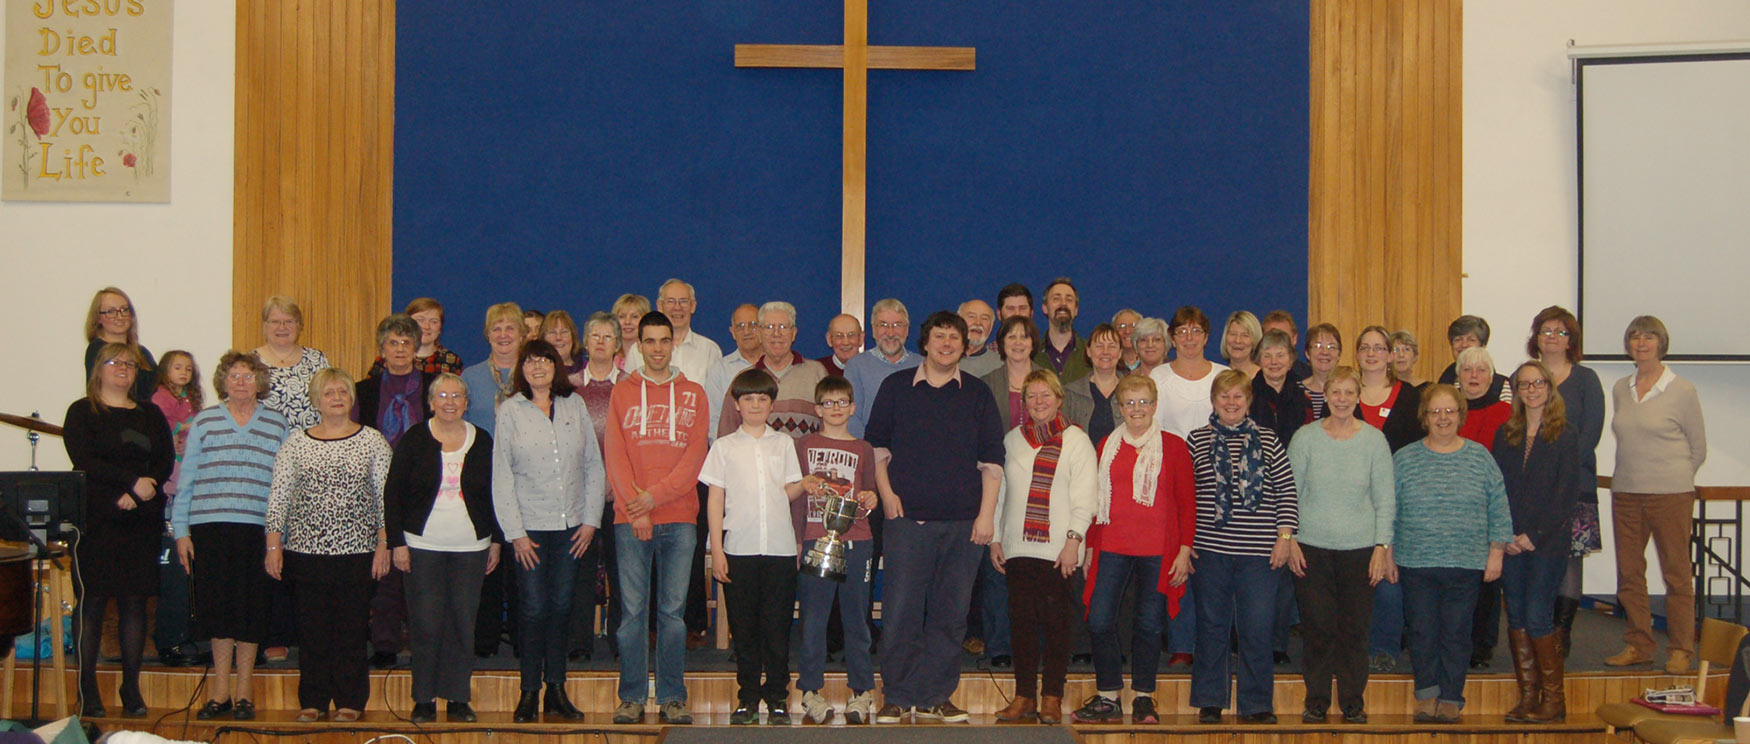 Coleford Community Choir at Coleford Baptist Church